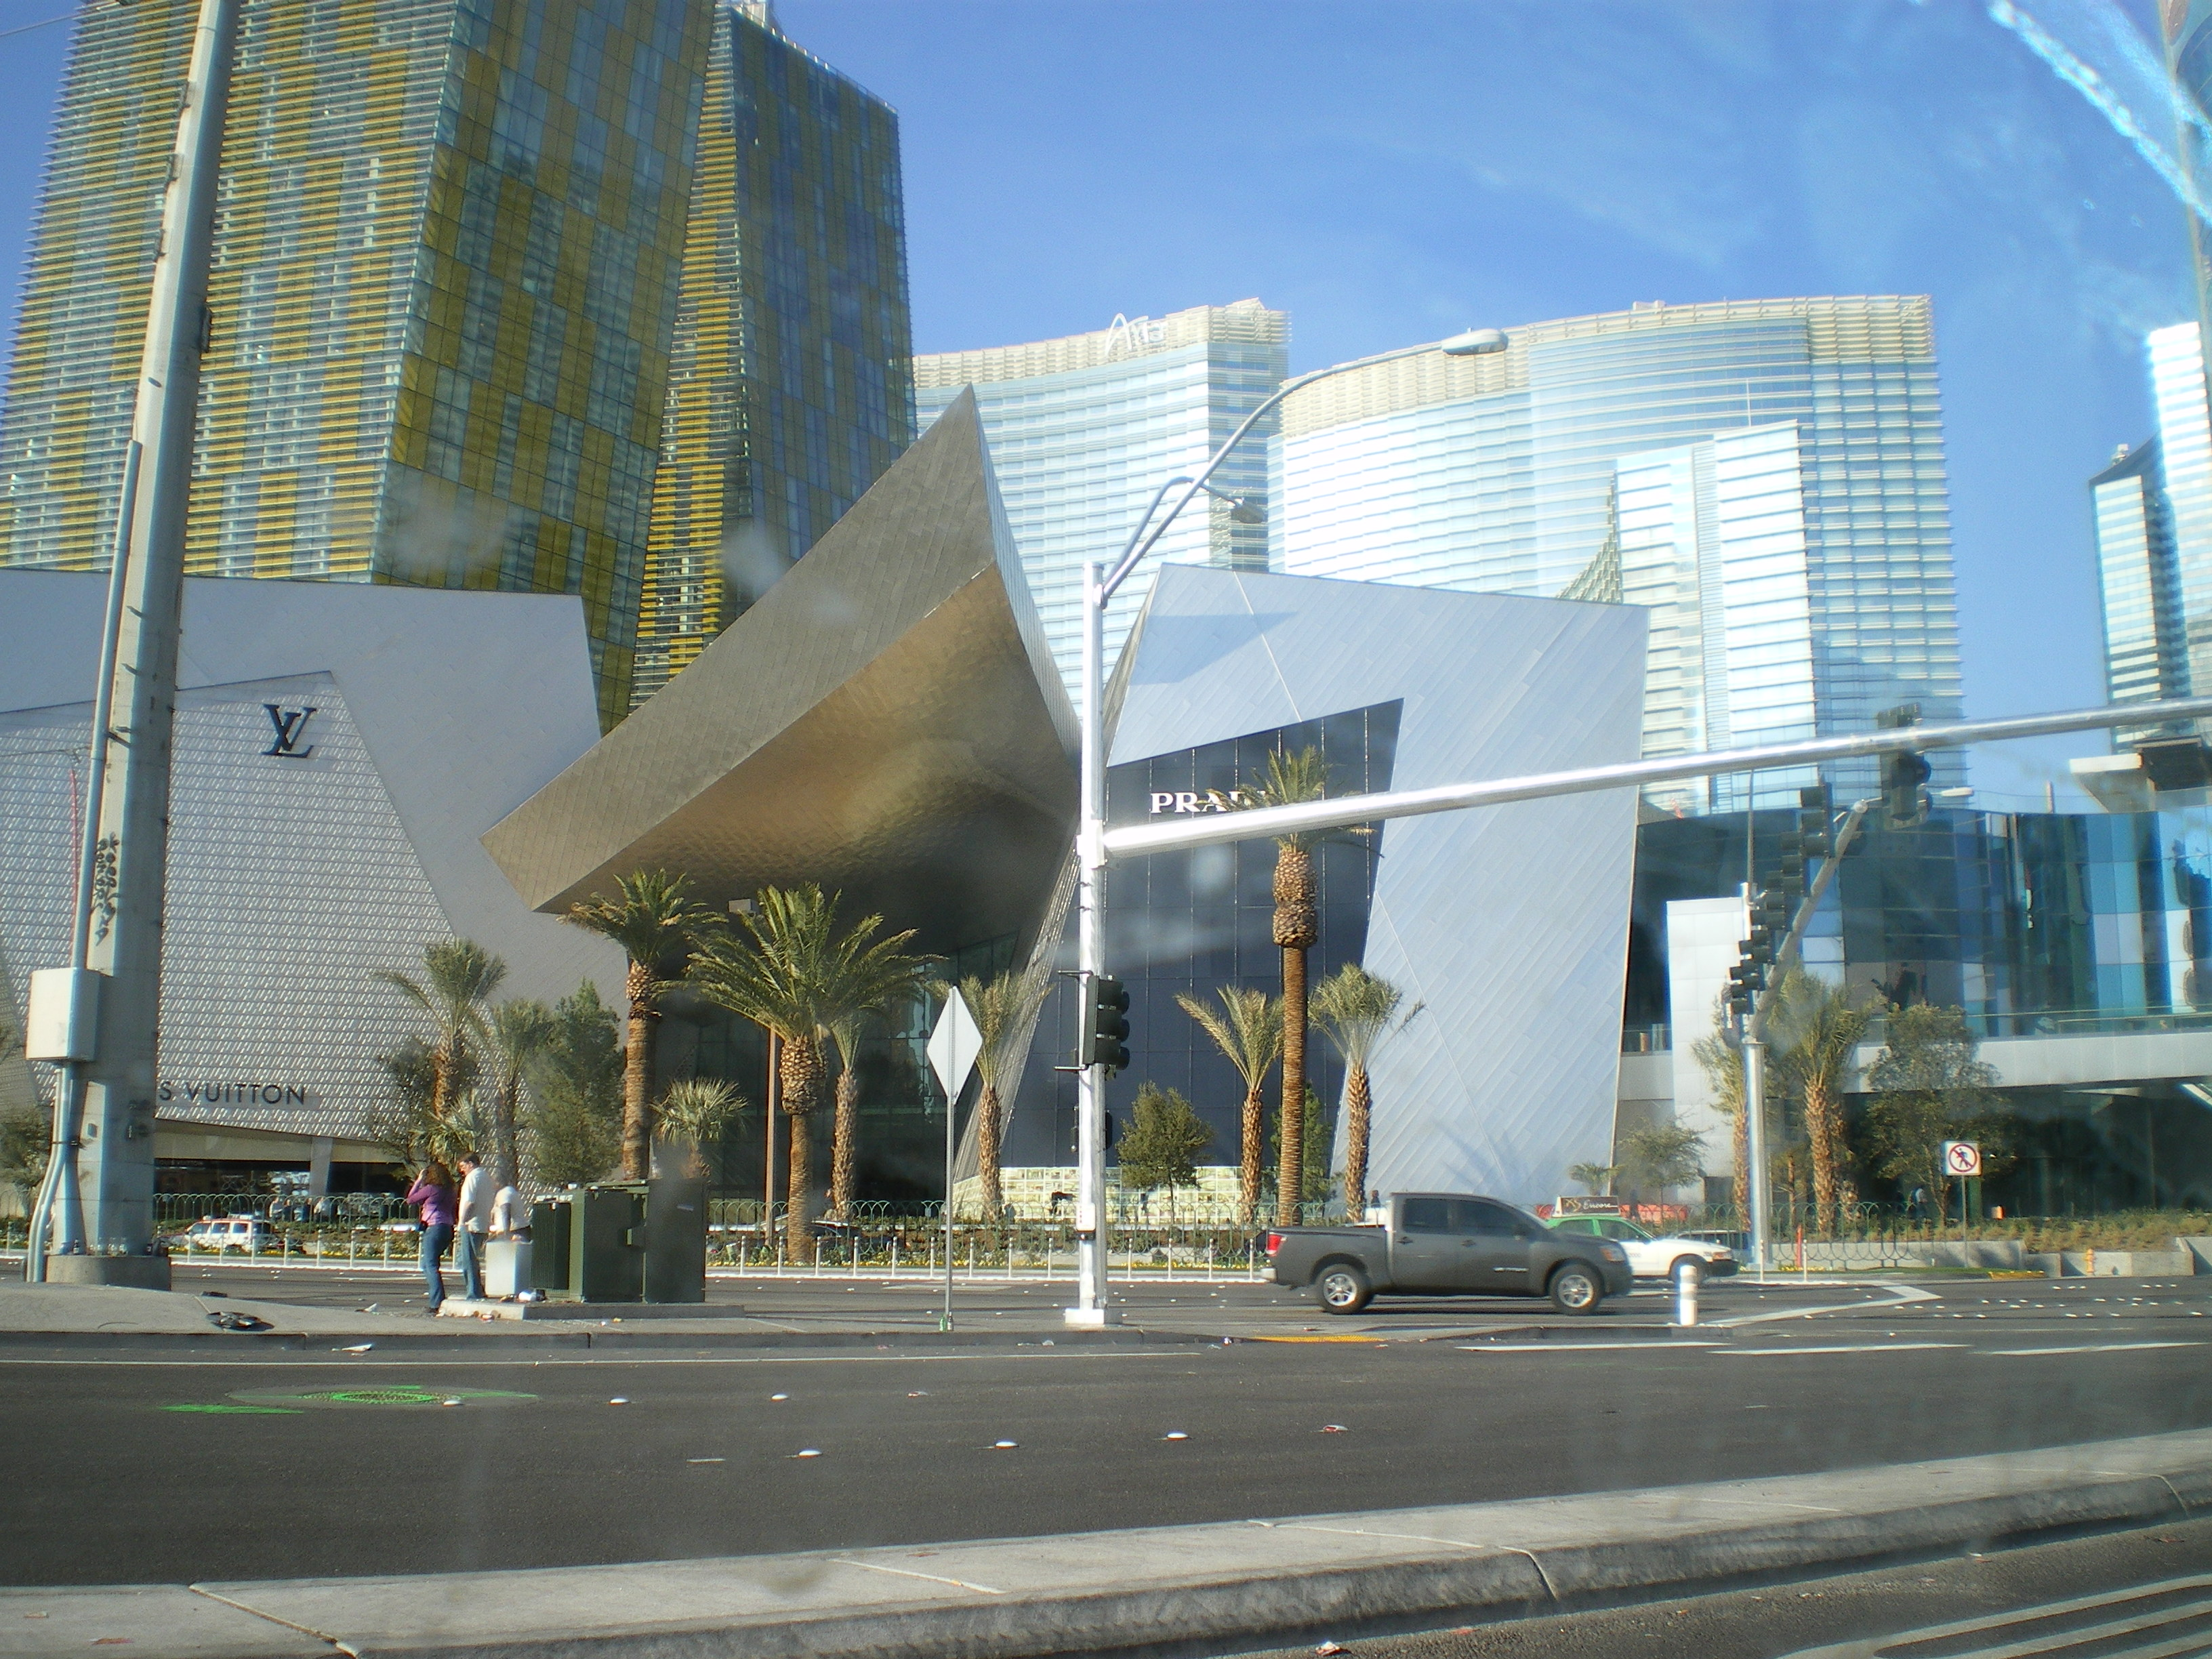 File:Las vegas buildings.jpg - Wikimedia Commons